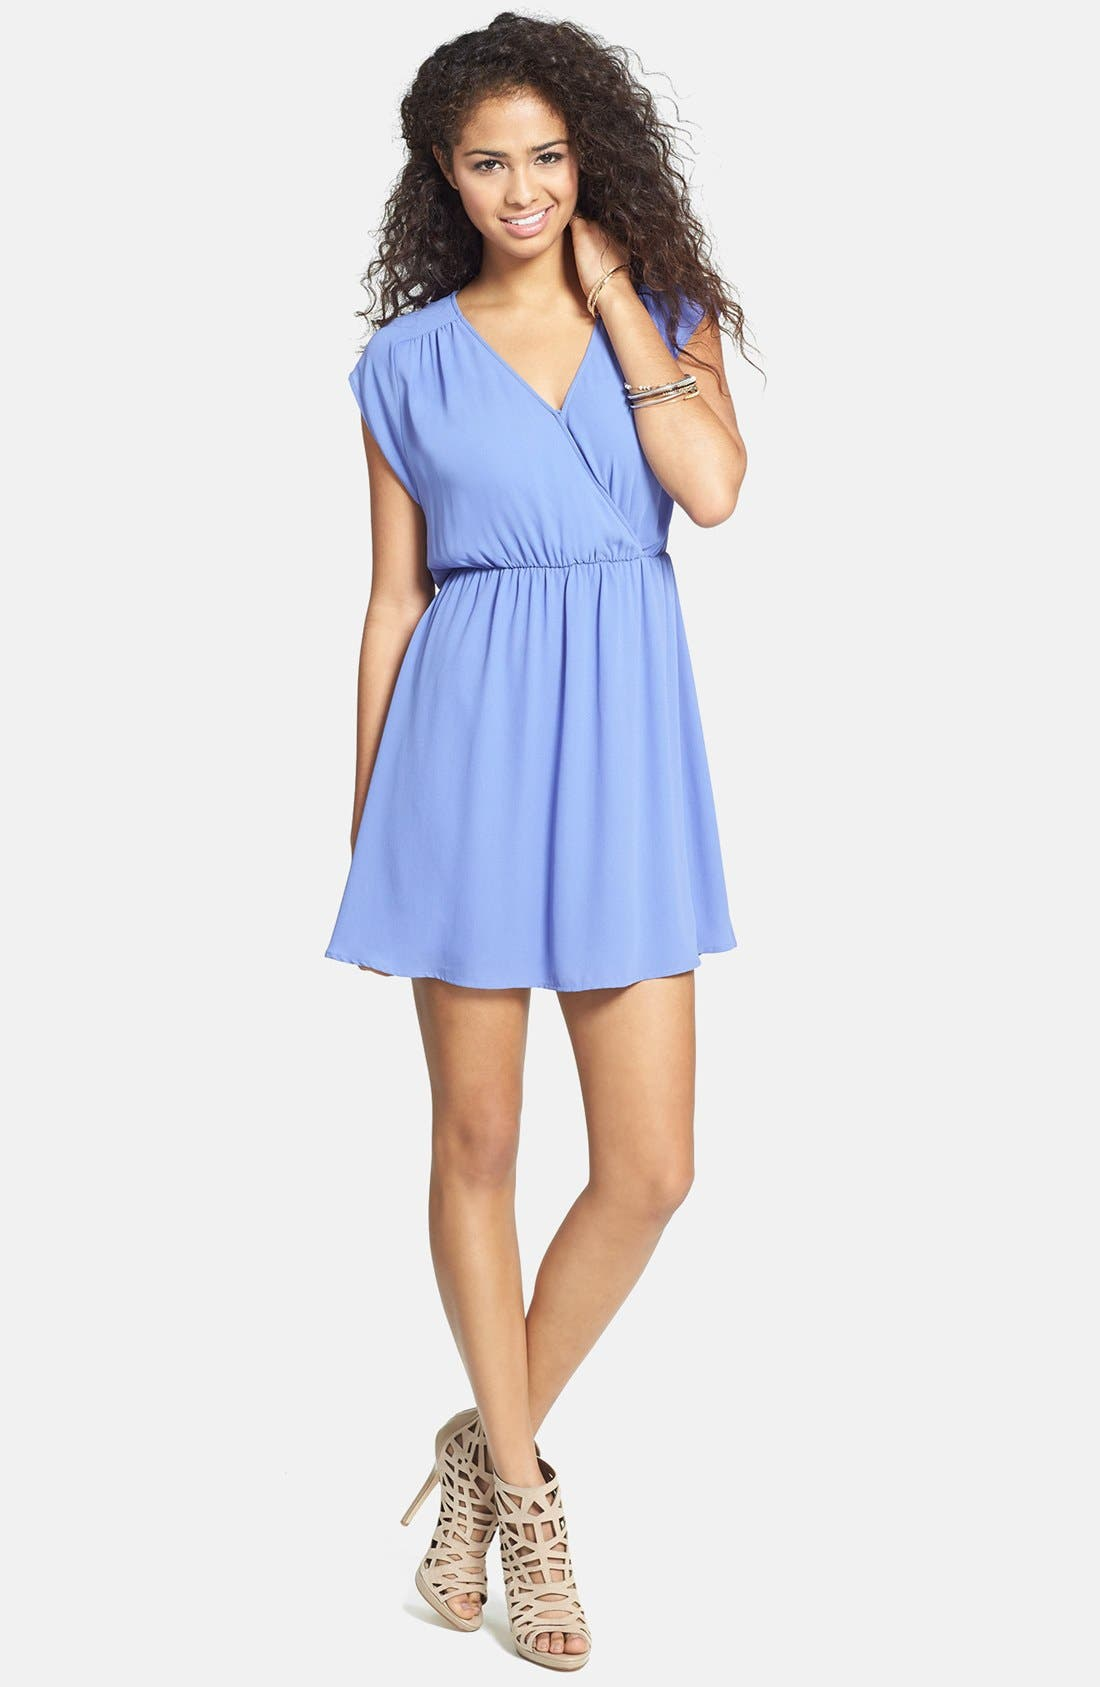 Main Image - Lush 'Katie' Surplice Chiffon Skater Dress